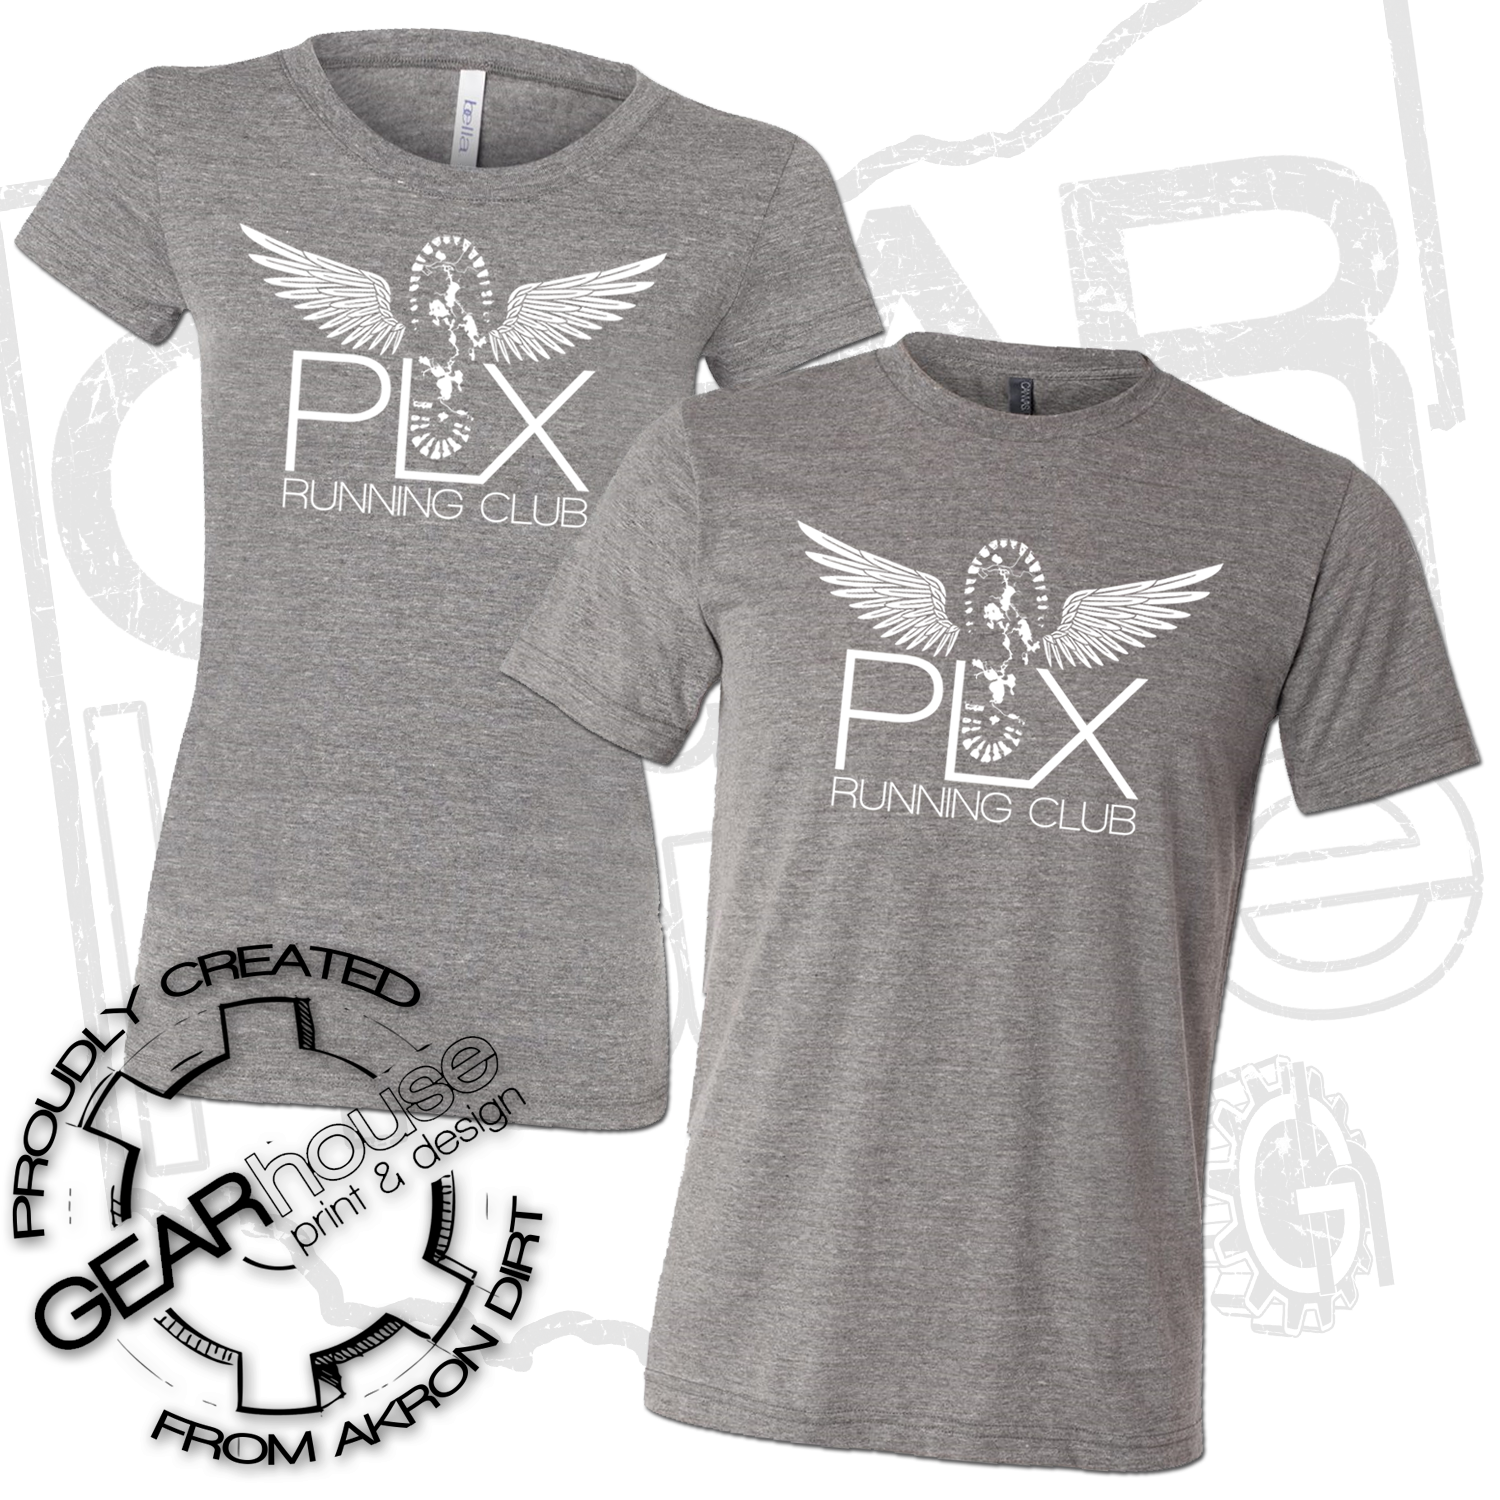 PLX RUNNING CLUB FITTED TEE